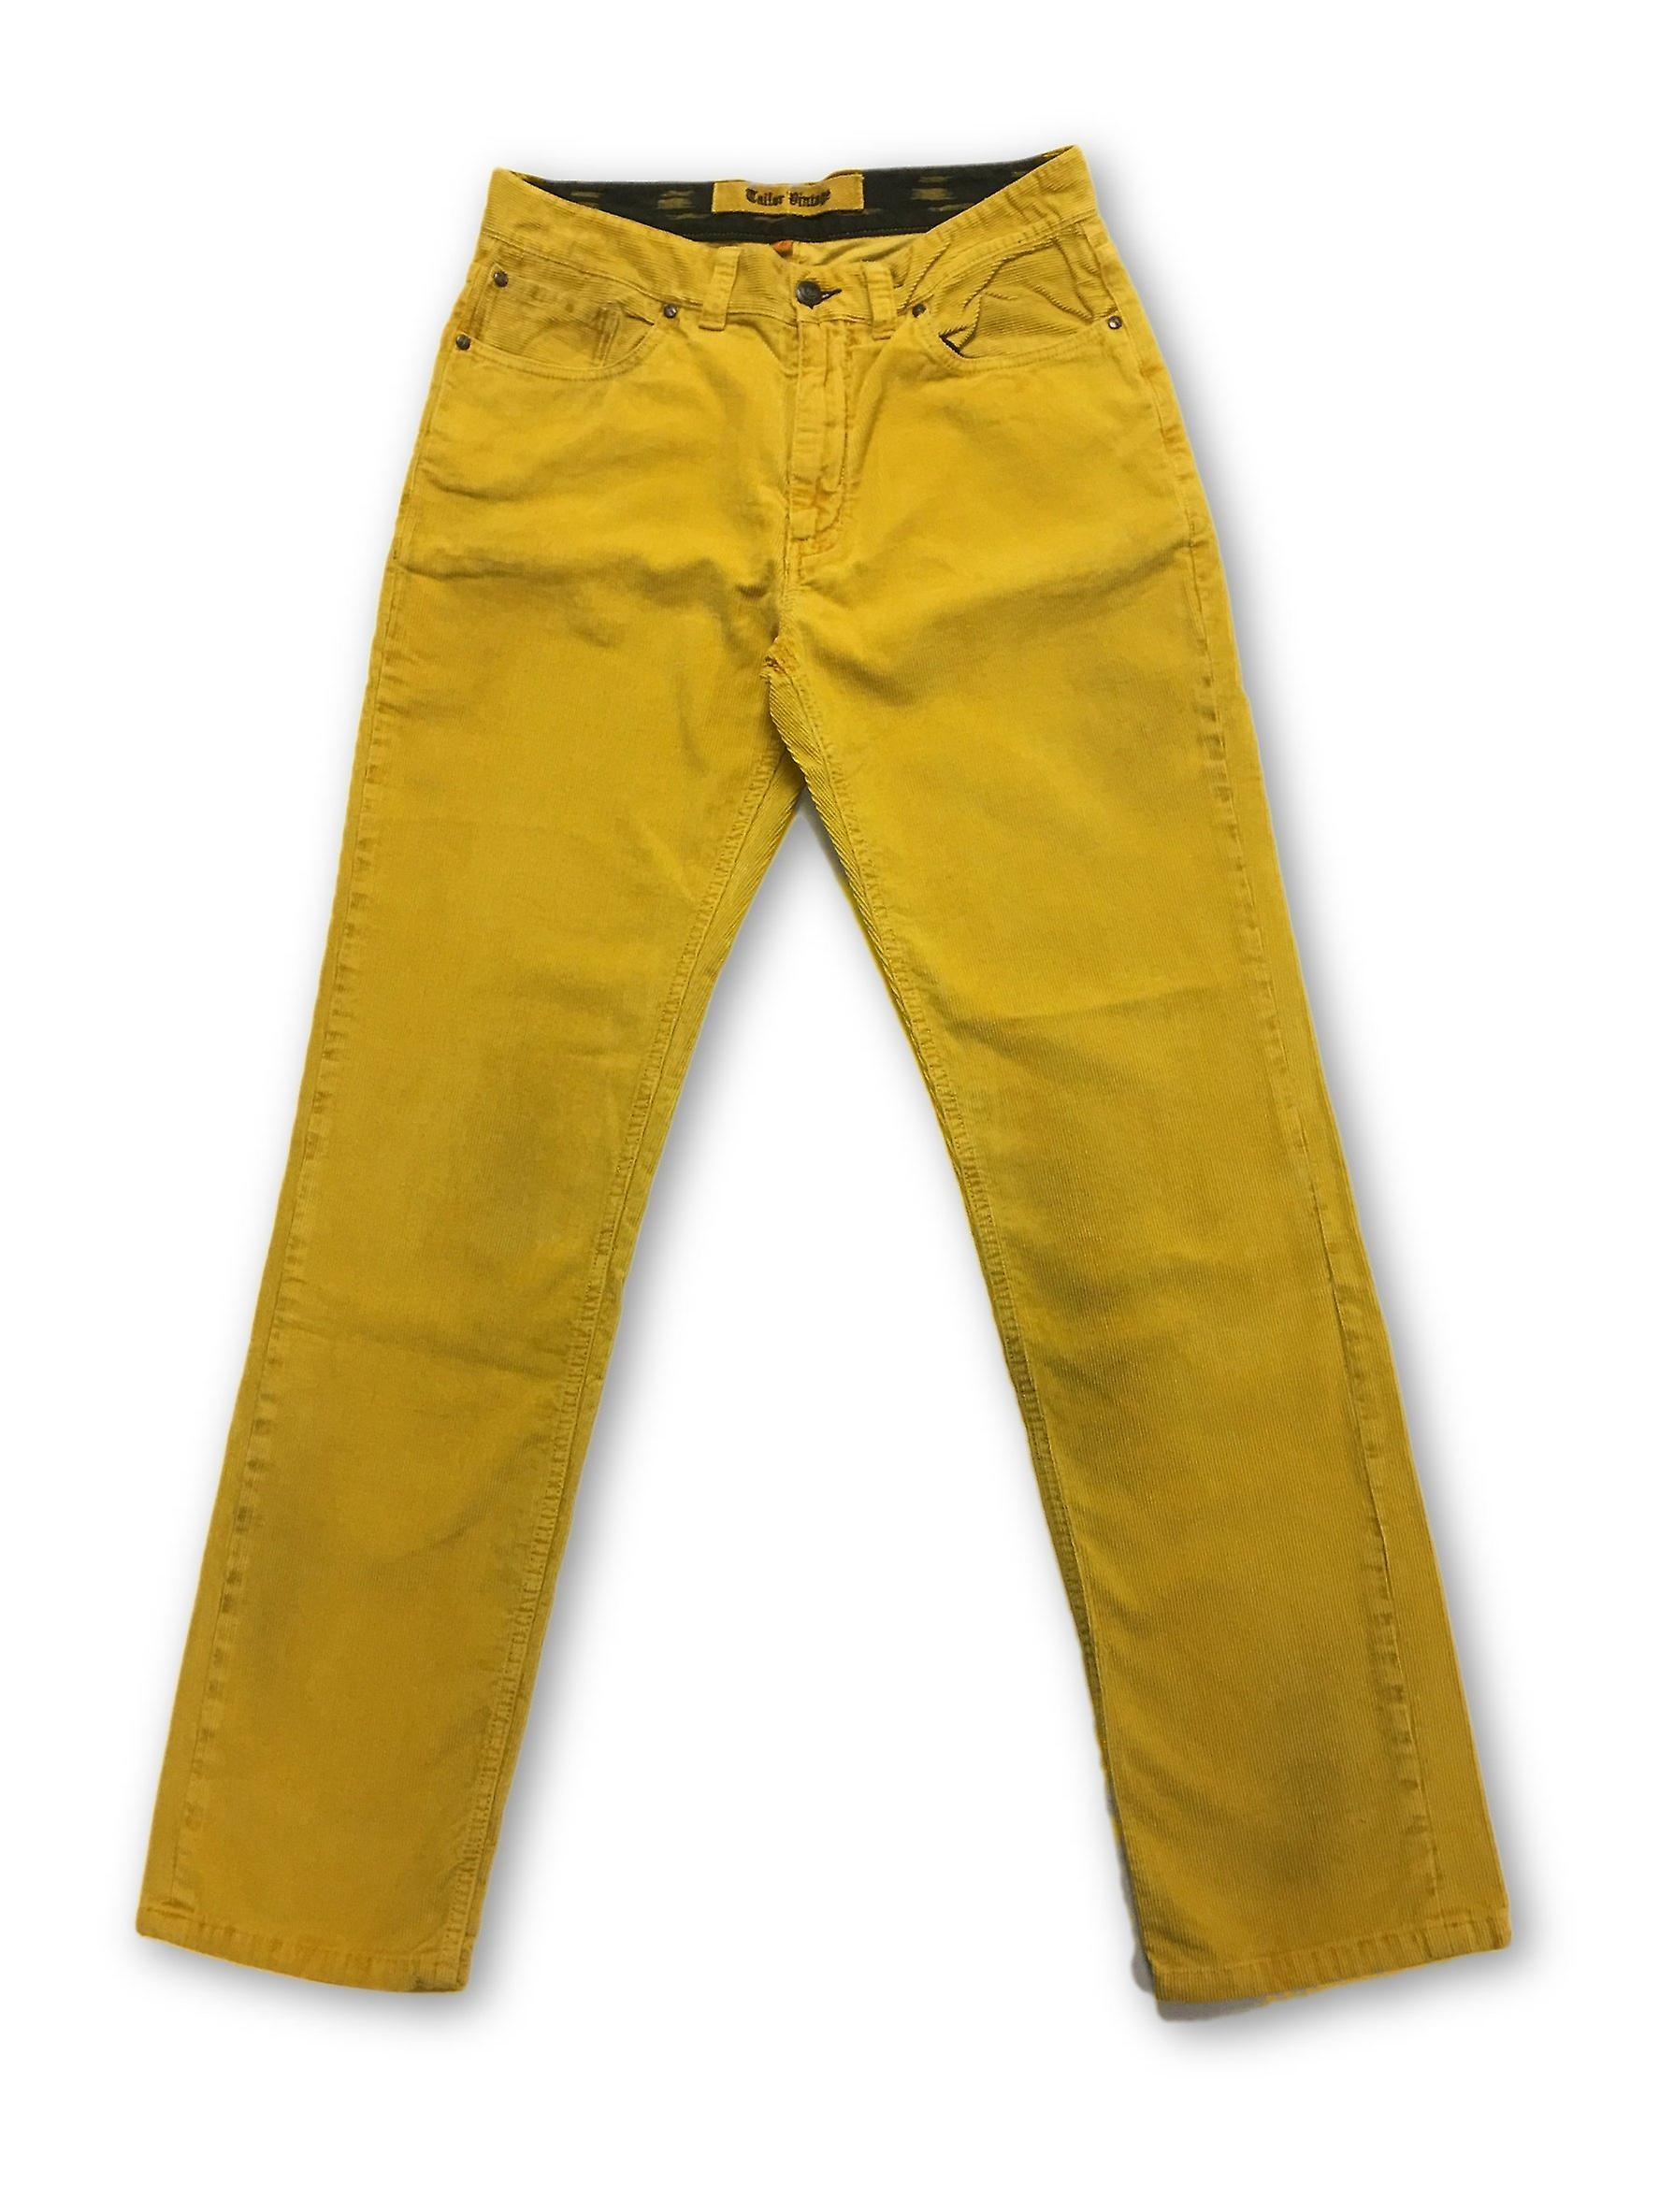 Tailor Vintage cord jeans in jaune